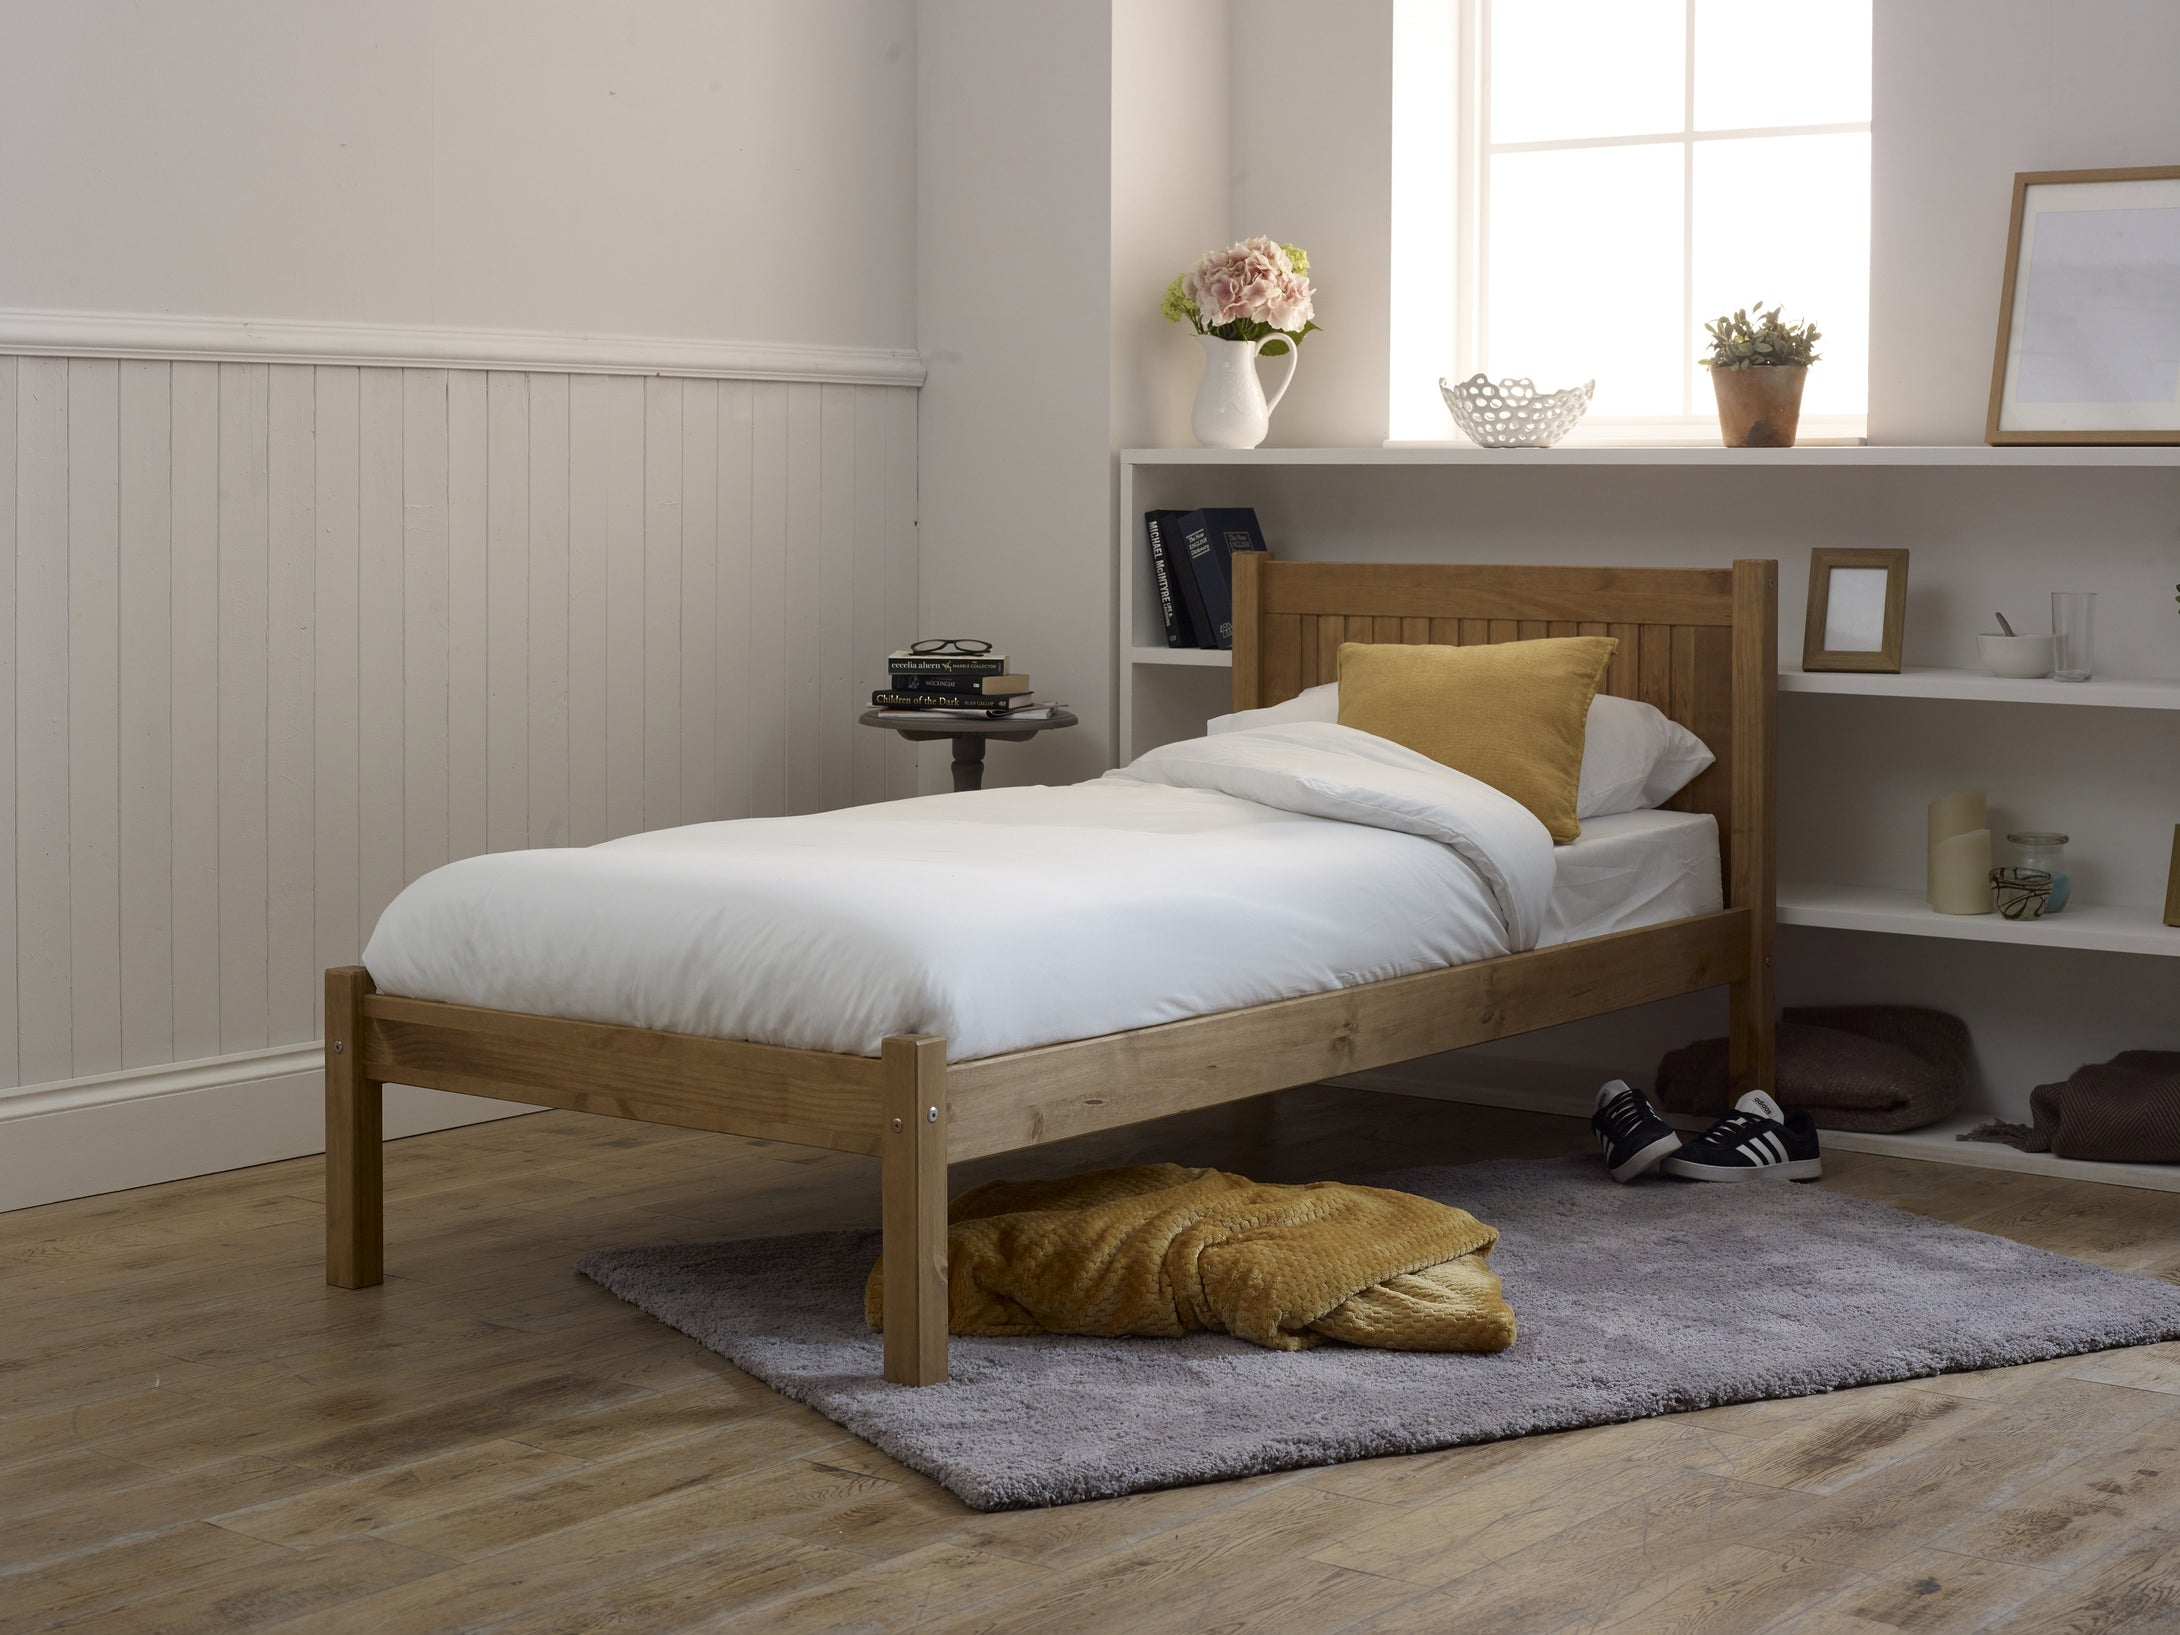 Double wooden bed | double pine bed frame-bedsteads-bedsmart